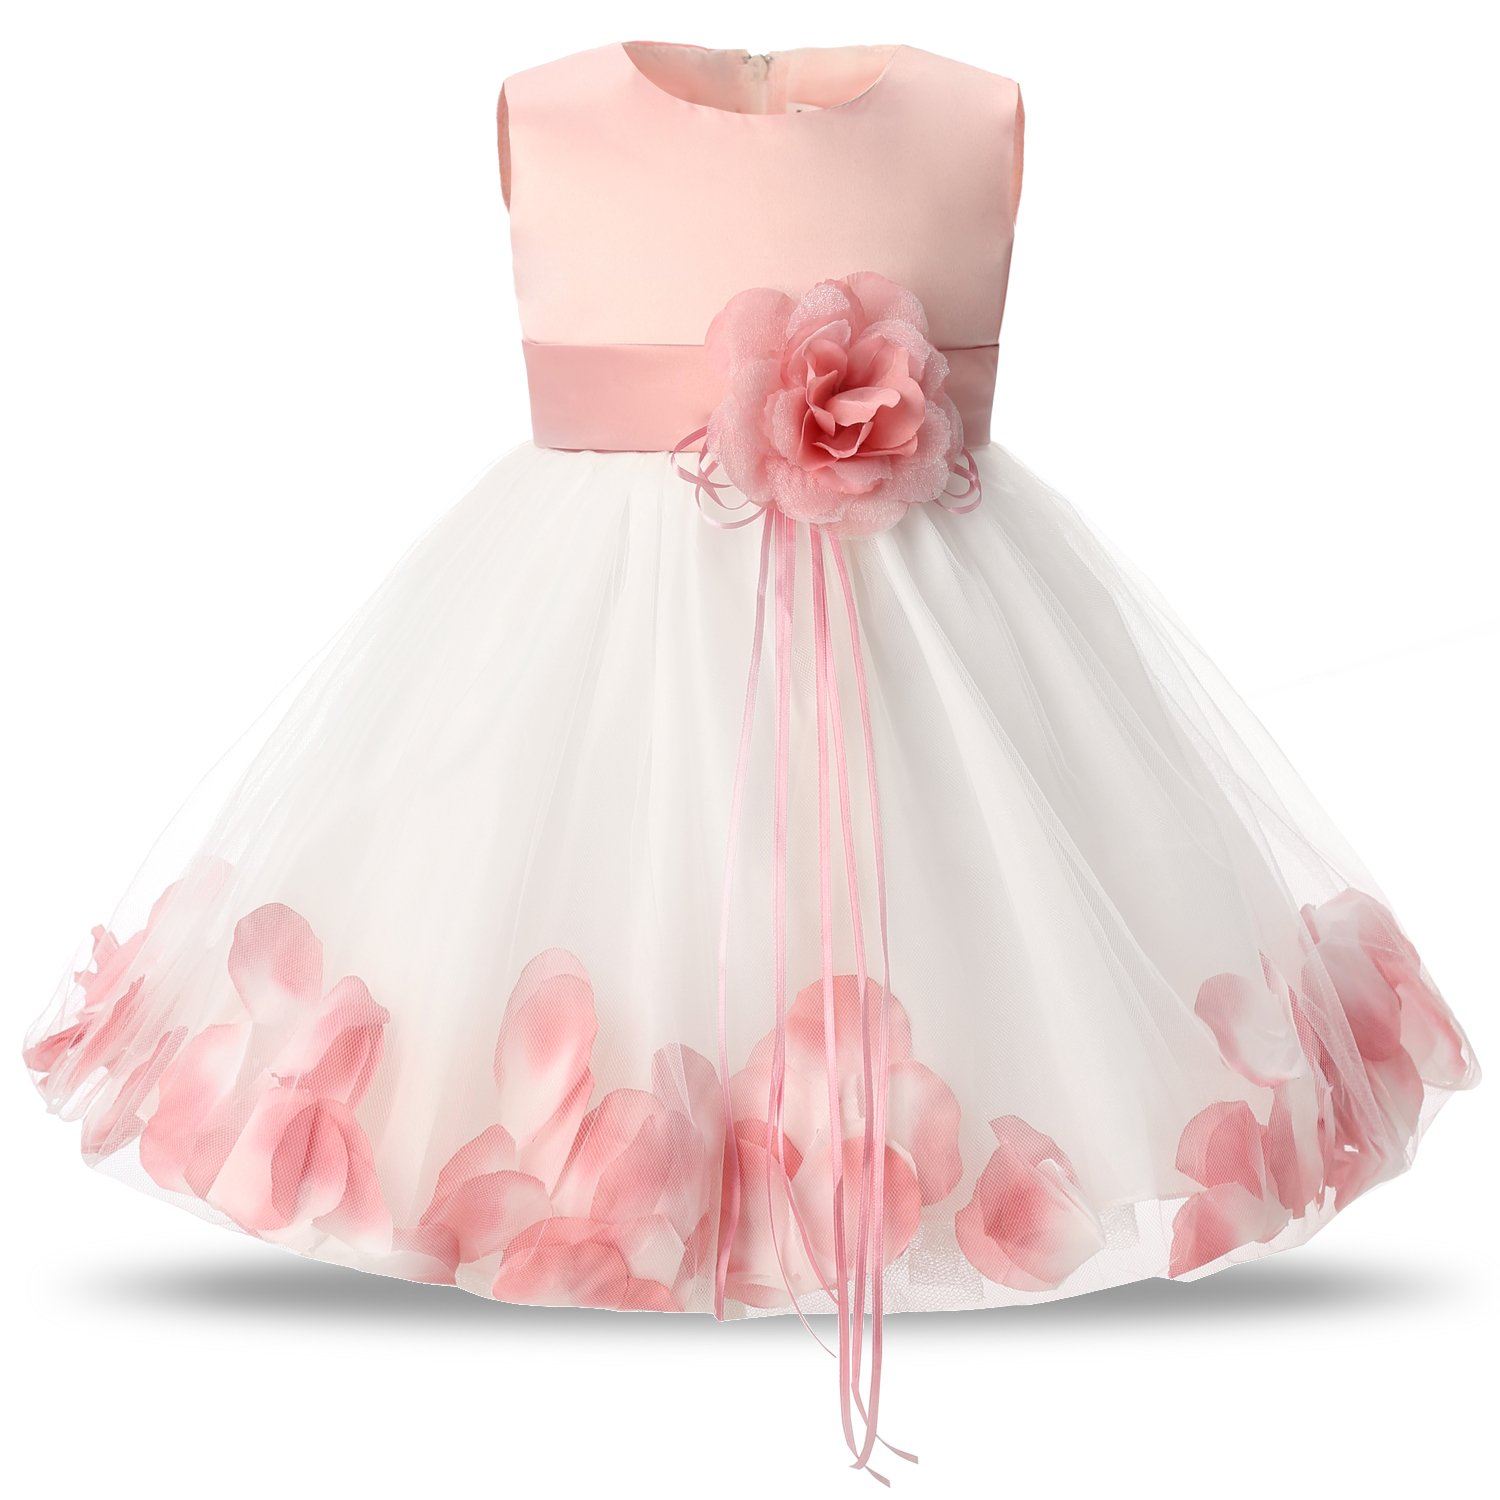 160139f473e Galleon - NNJXD Girl Tutu Flower Petals Bow Bridal Dress For Toddler Girl  Size(S) 4-9 Months Pink